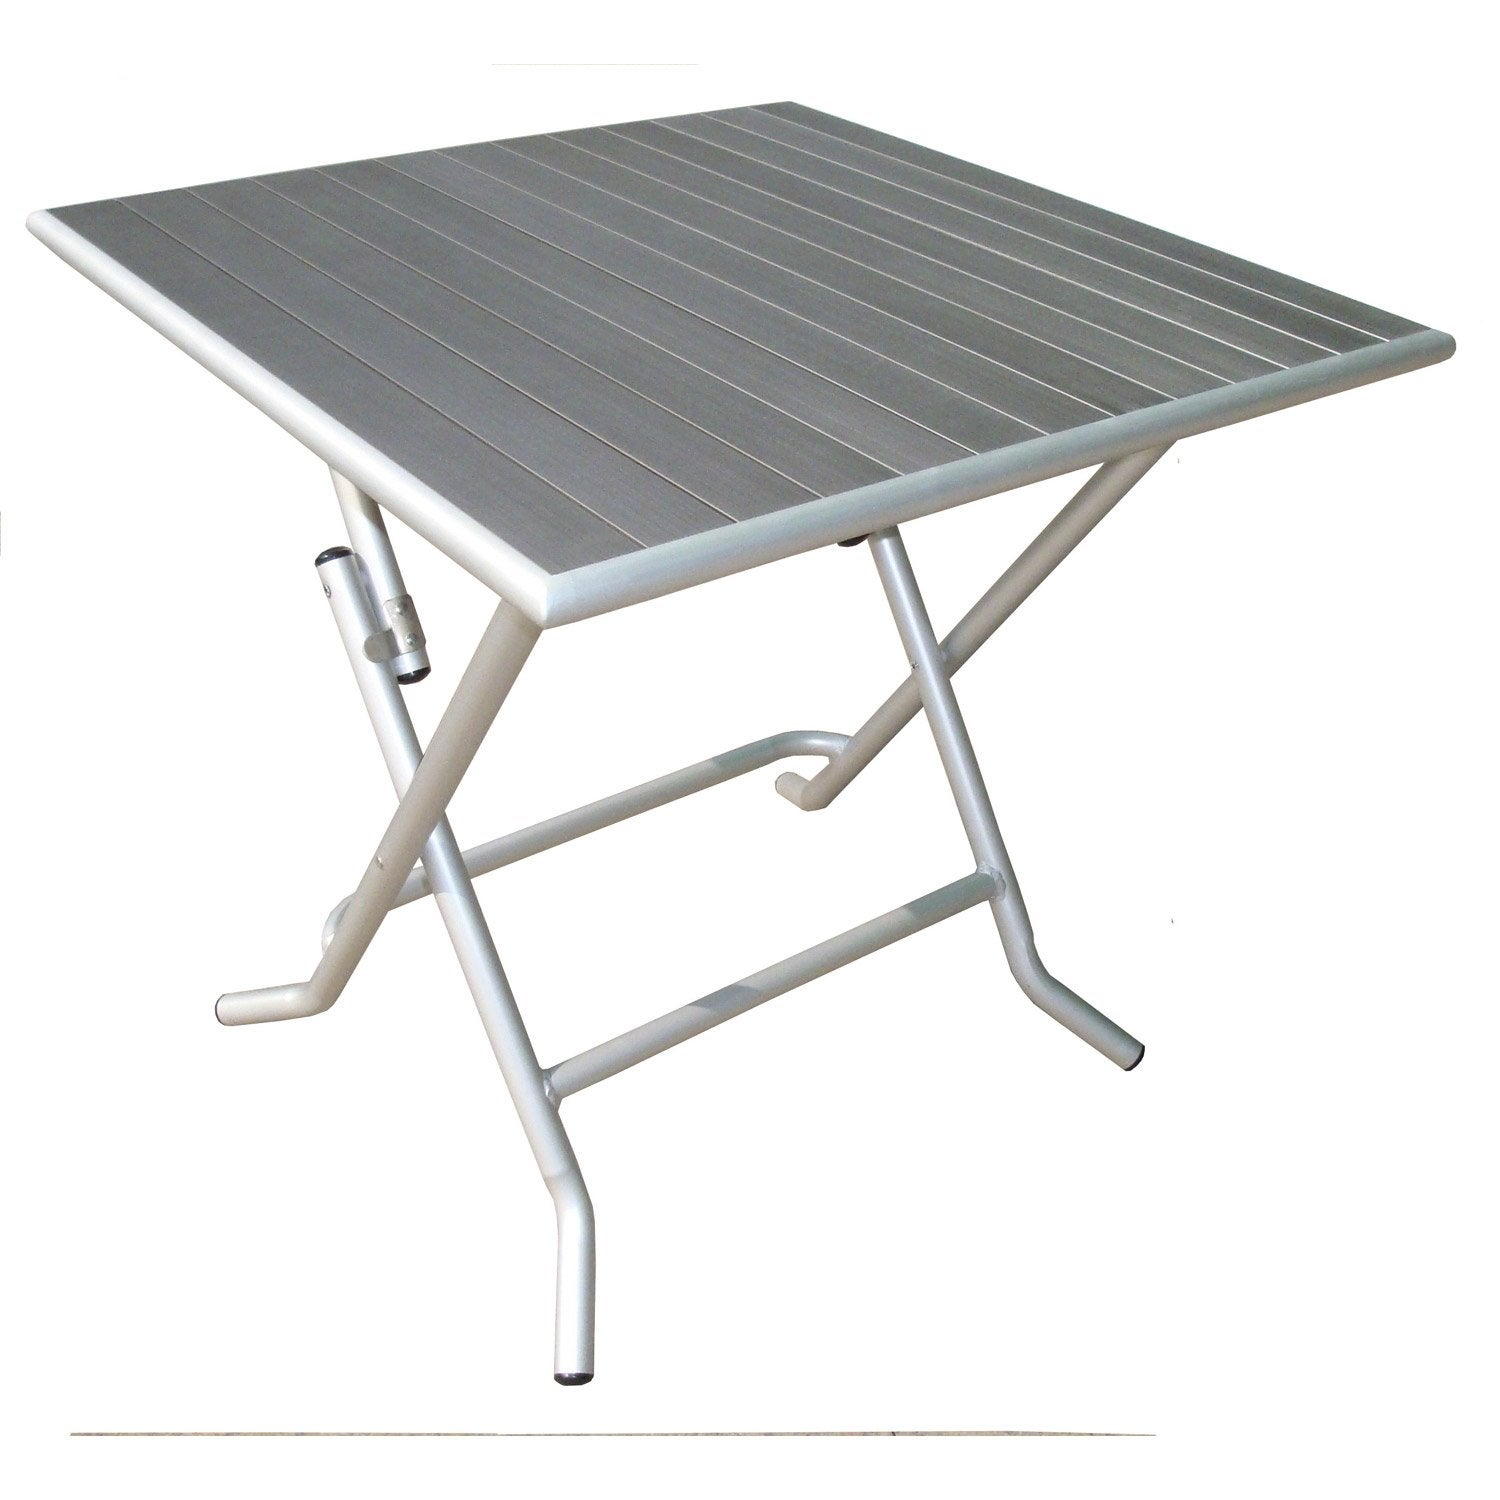 Table de jardin m tal leroy merlin - Table carree pas cher ...